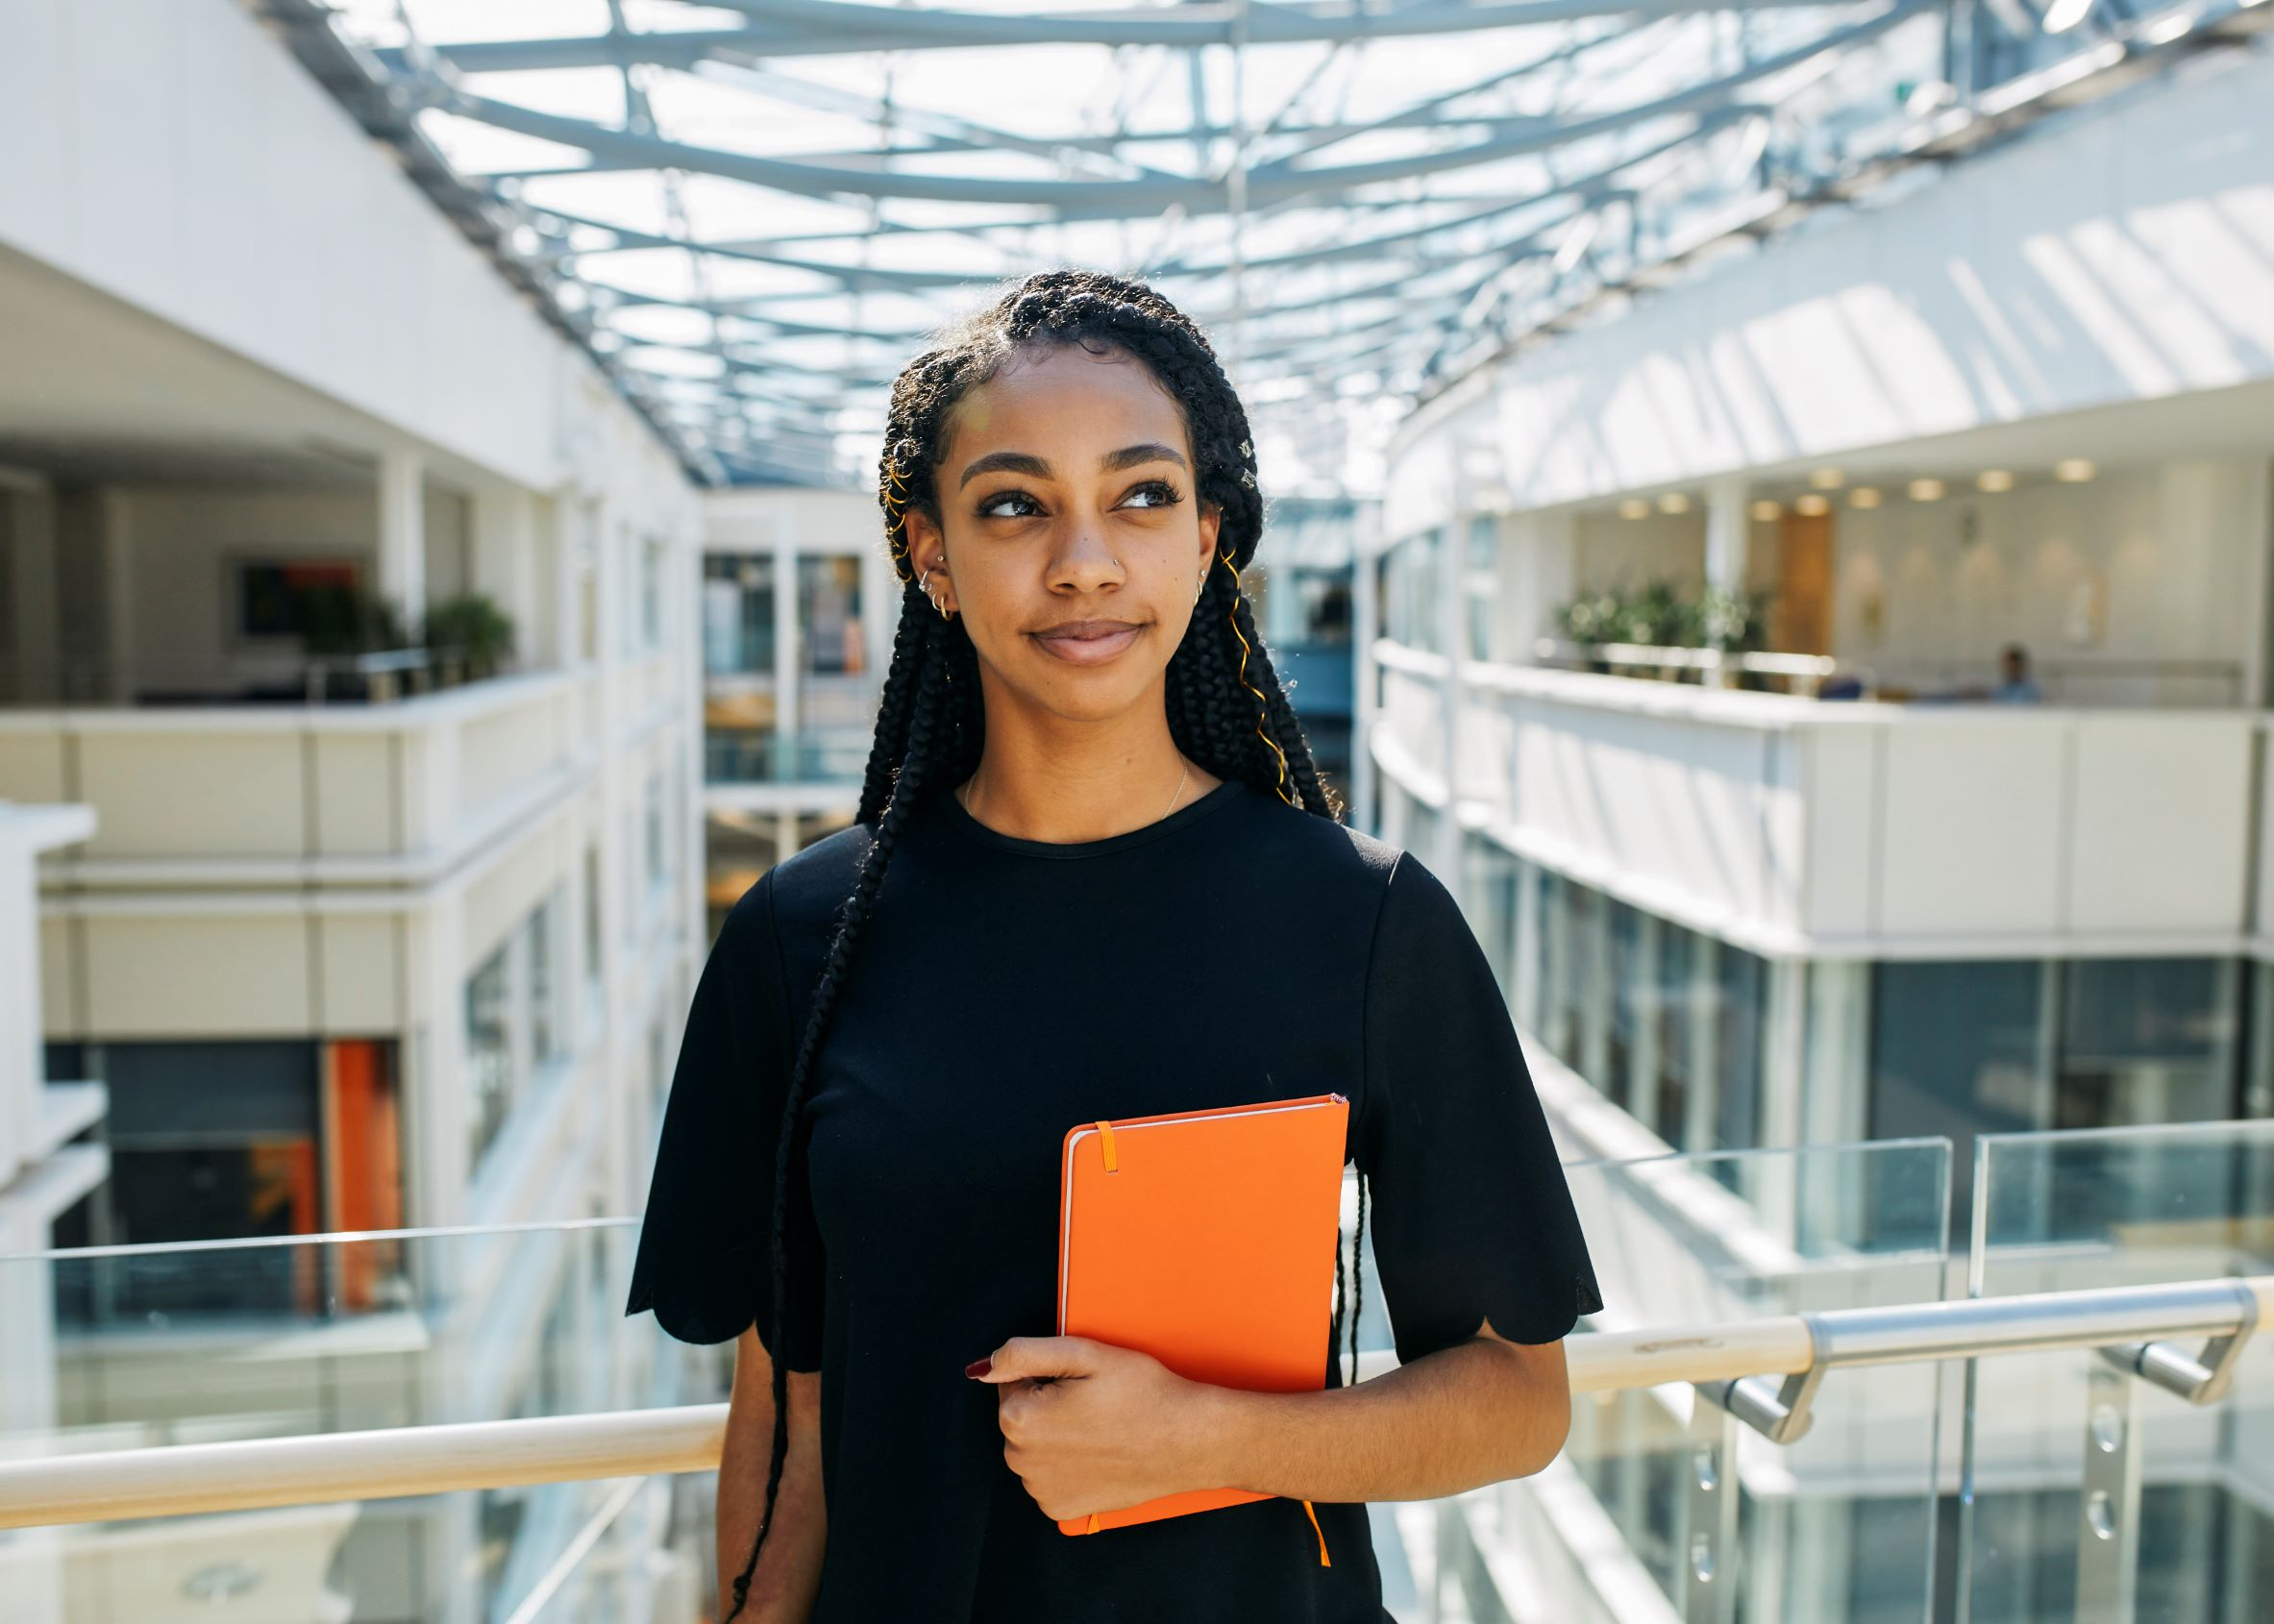 Image of GSK Employee with backdrop of the office